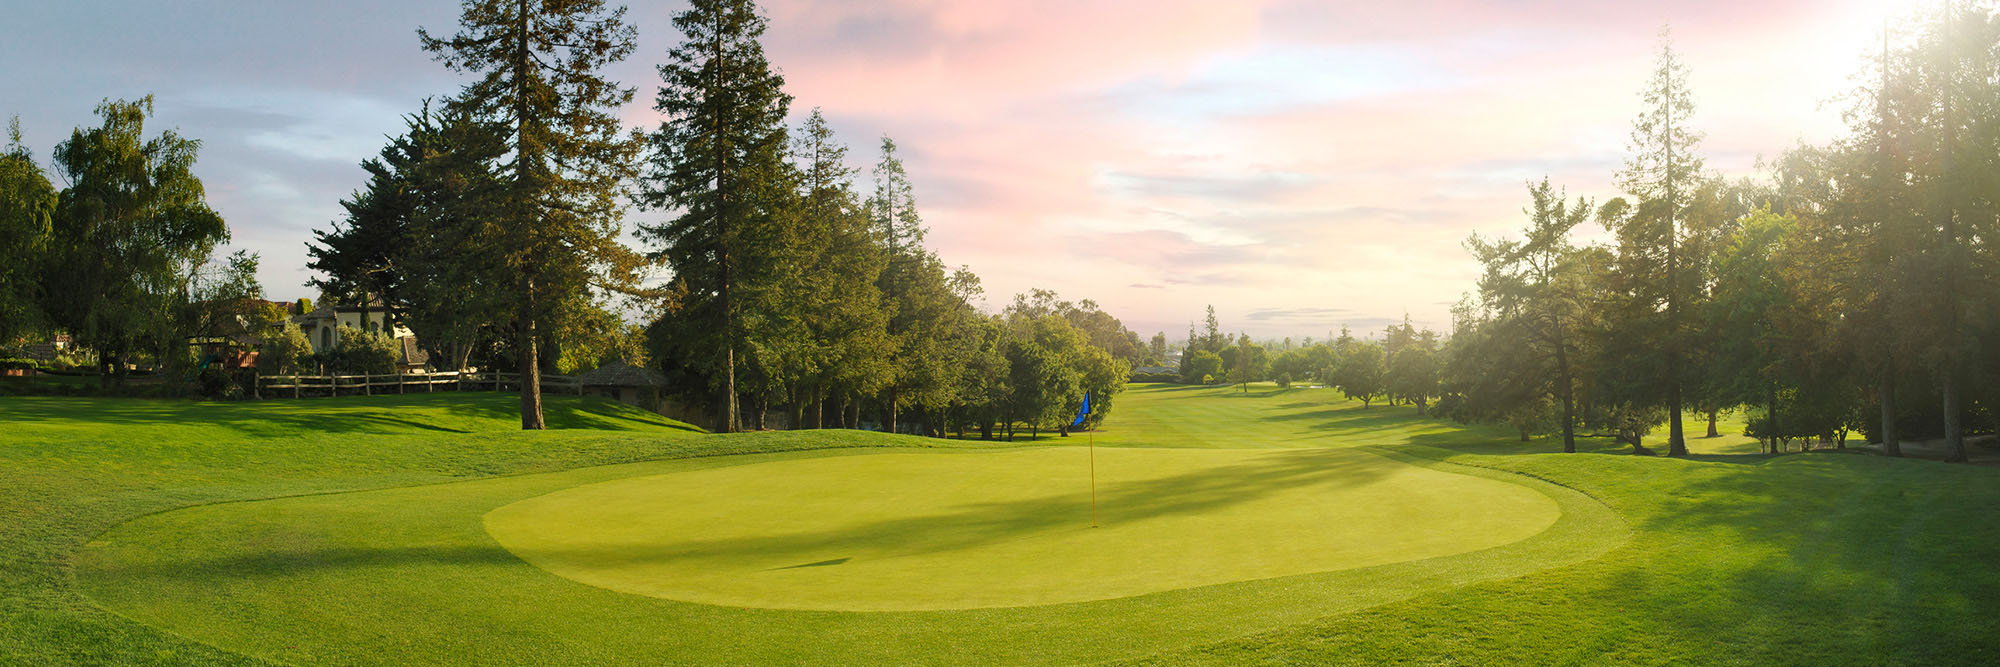 Golf Course Image - San Jose Country Club No. 15